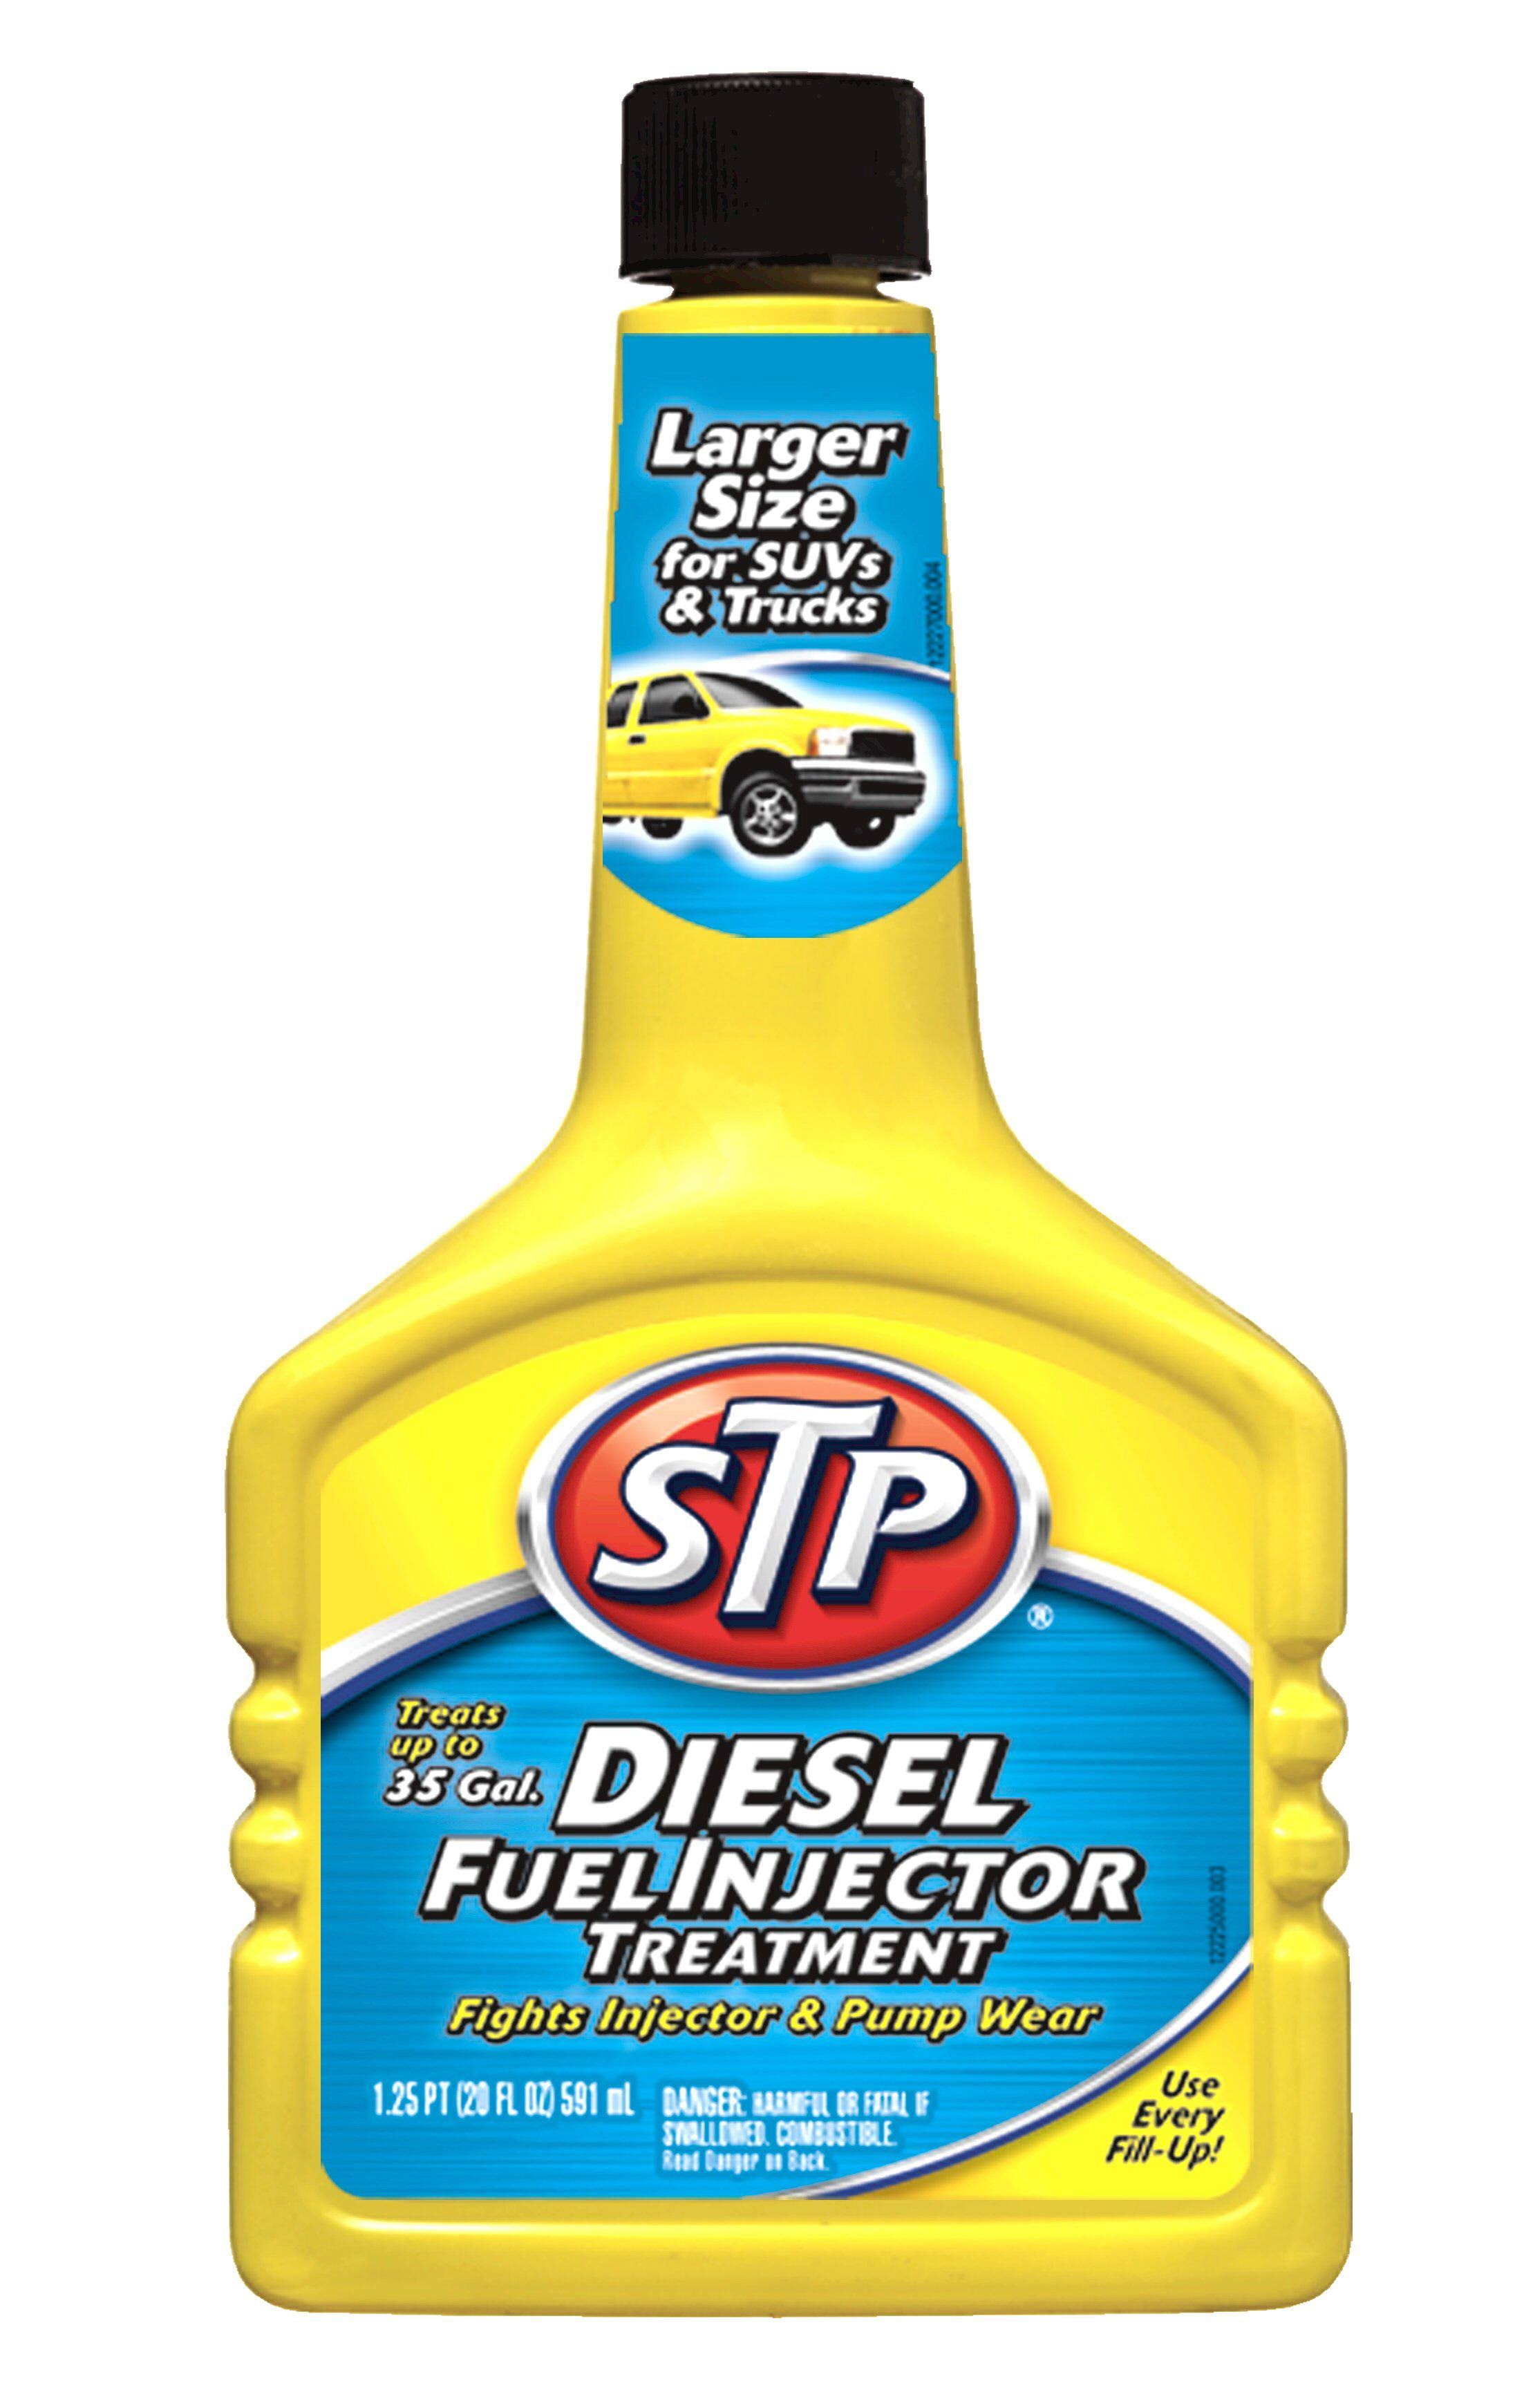 STP Diesel Fuel Treatment & Injector Cleaner - 1.25 Pint